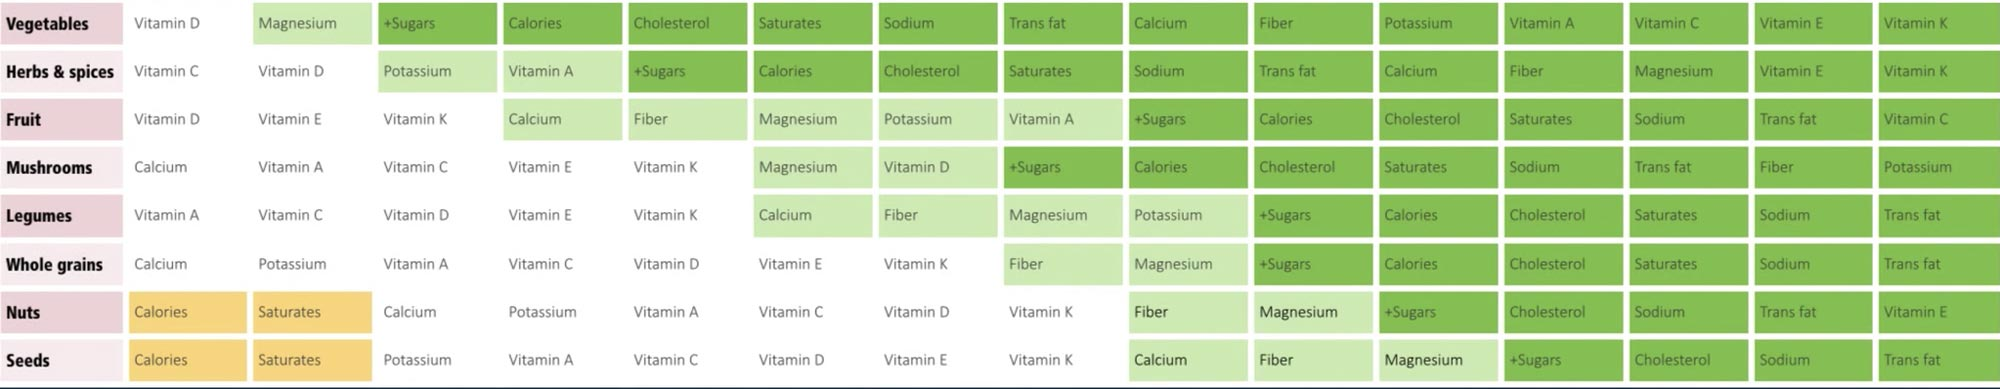 Chart of foods and their vitamins & minerals